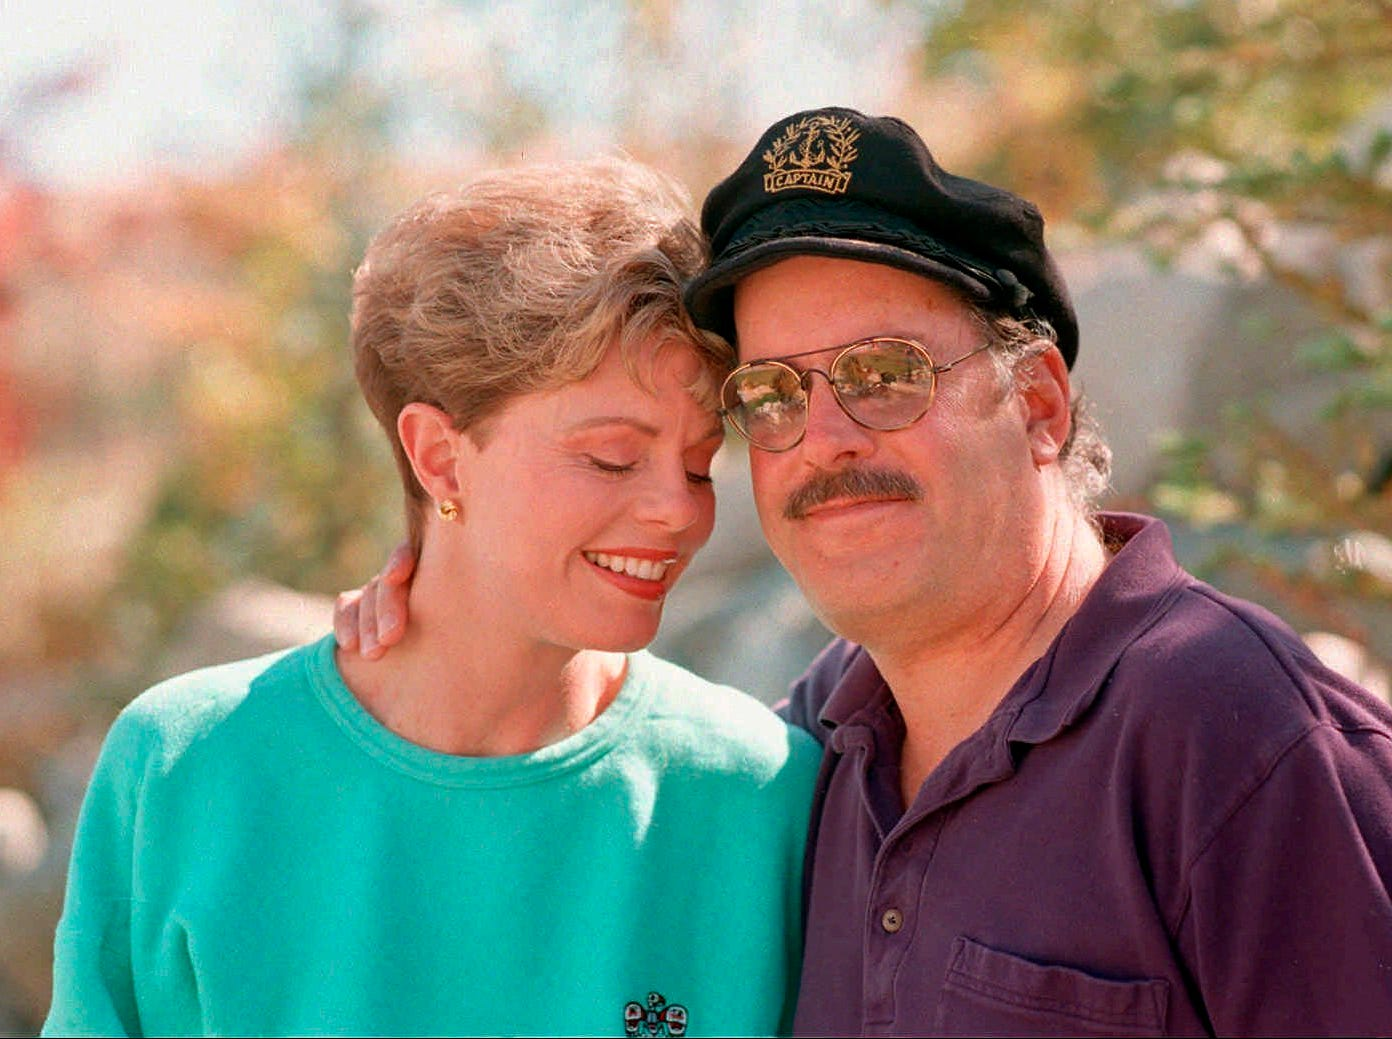 This Oct. 25, 1995 file photo shows Toni Tennille, left, and Daryl Dragon, the singing duo The Captain and Tennille, posing during an interview in at their home in Washoe Valley, south of Reno, Nev.  Dragon died early Wednesday, Jan. 2, 2019 in at a hospice in Prescott, Ariz. Spokesman Harlan Boll said he was 76 and died of renal failure. His former wife and musical partner, Toni Tennille, was by his side.